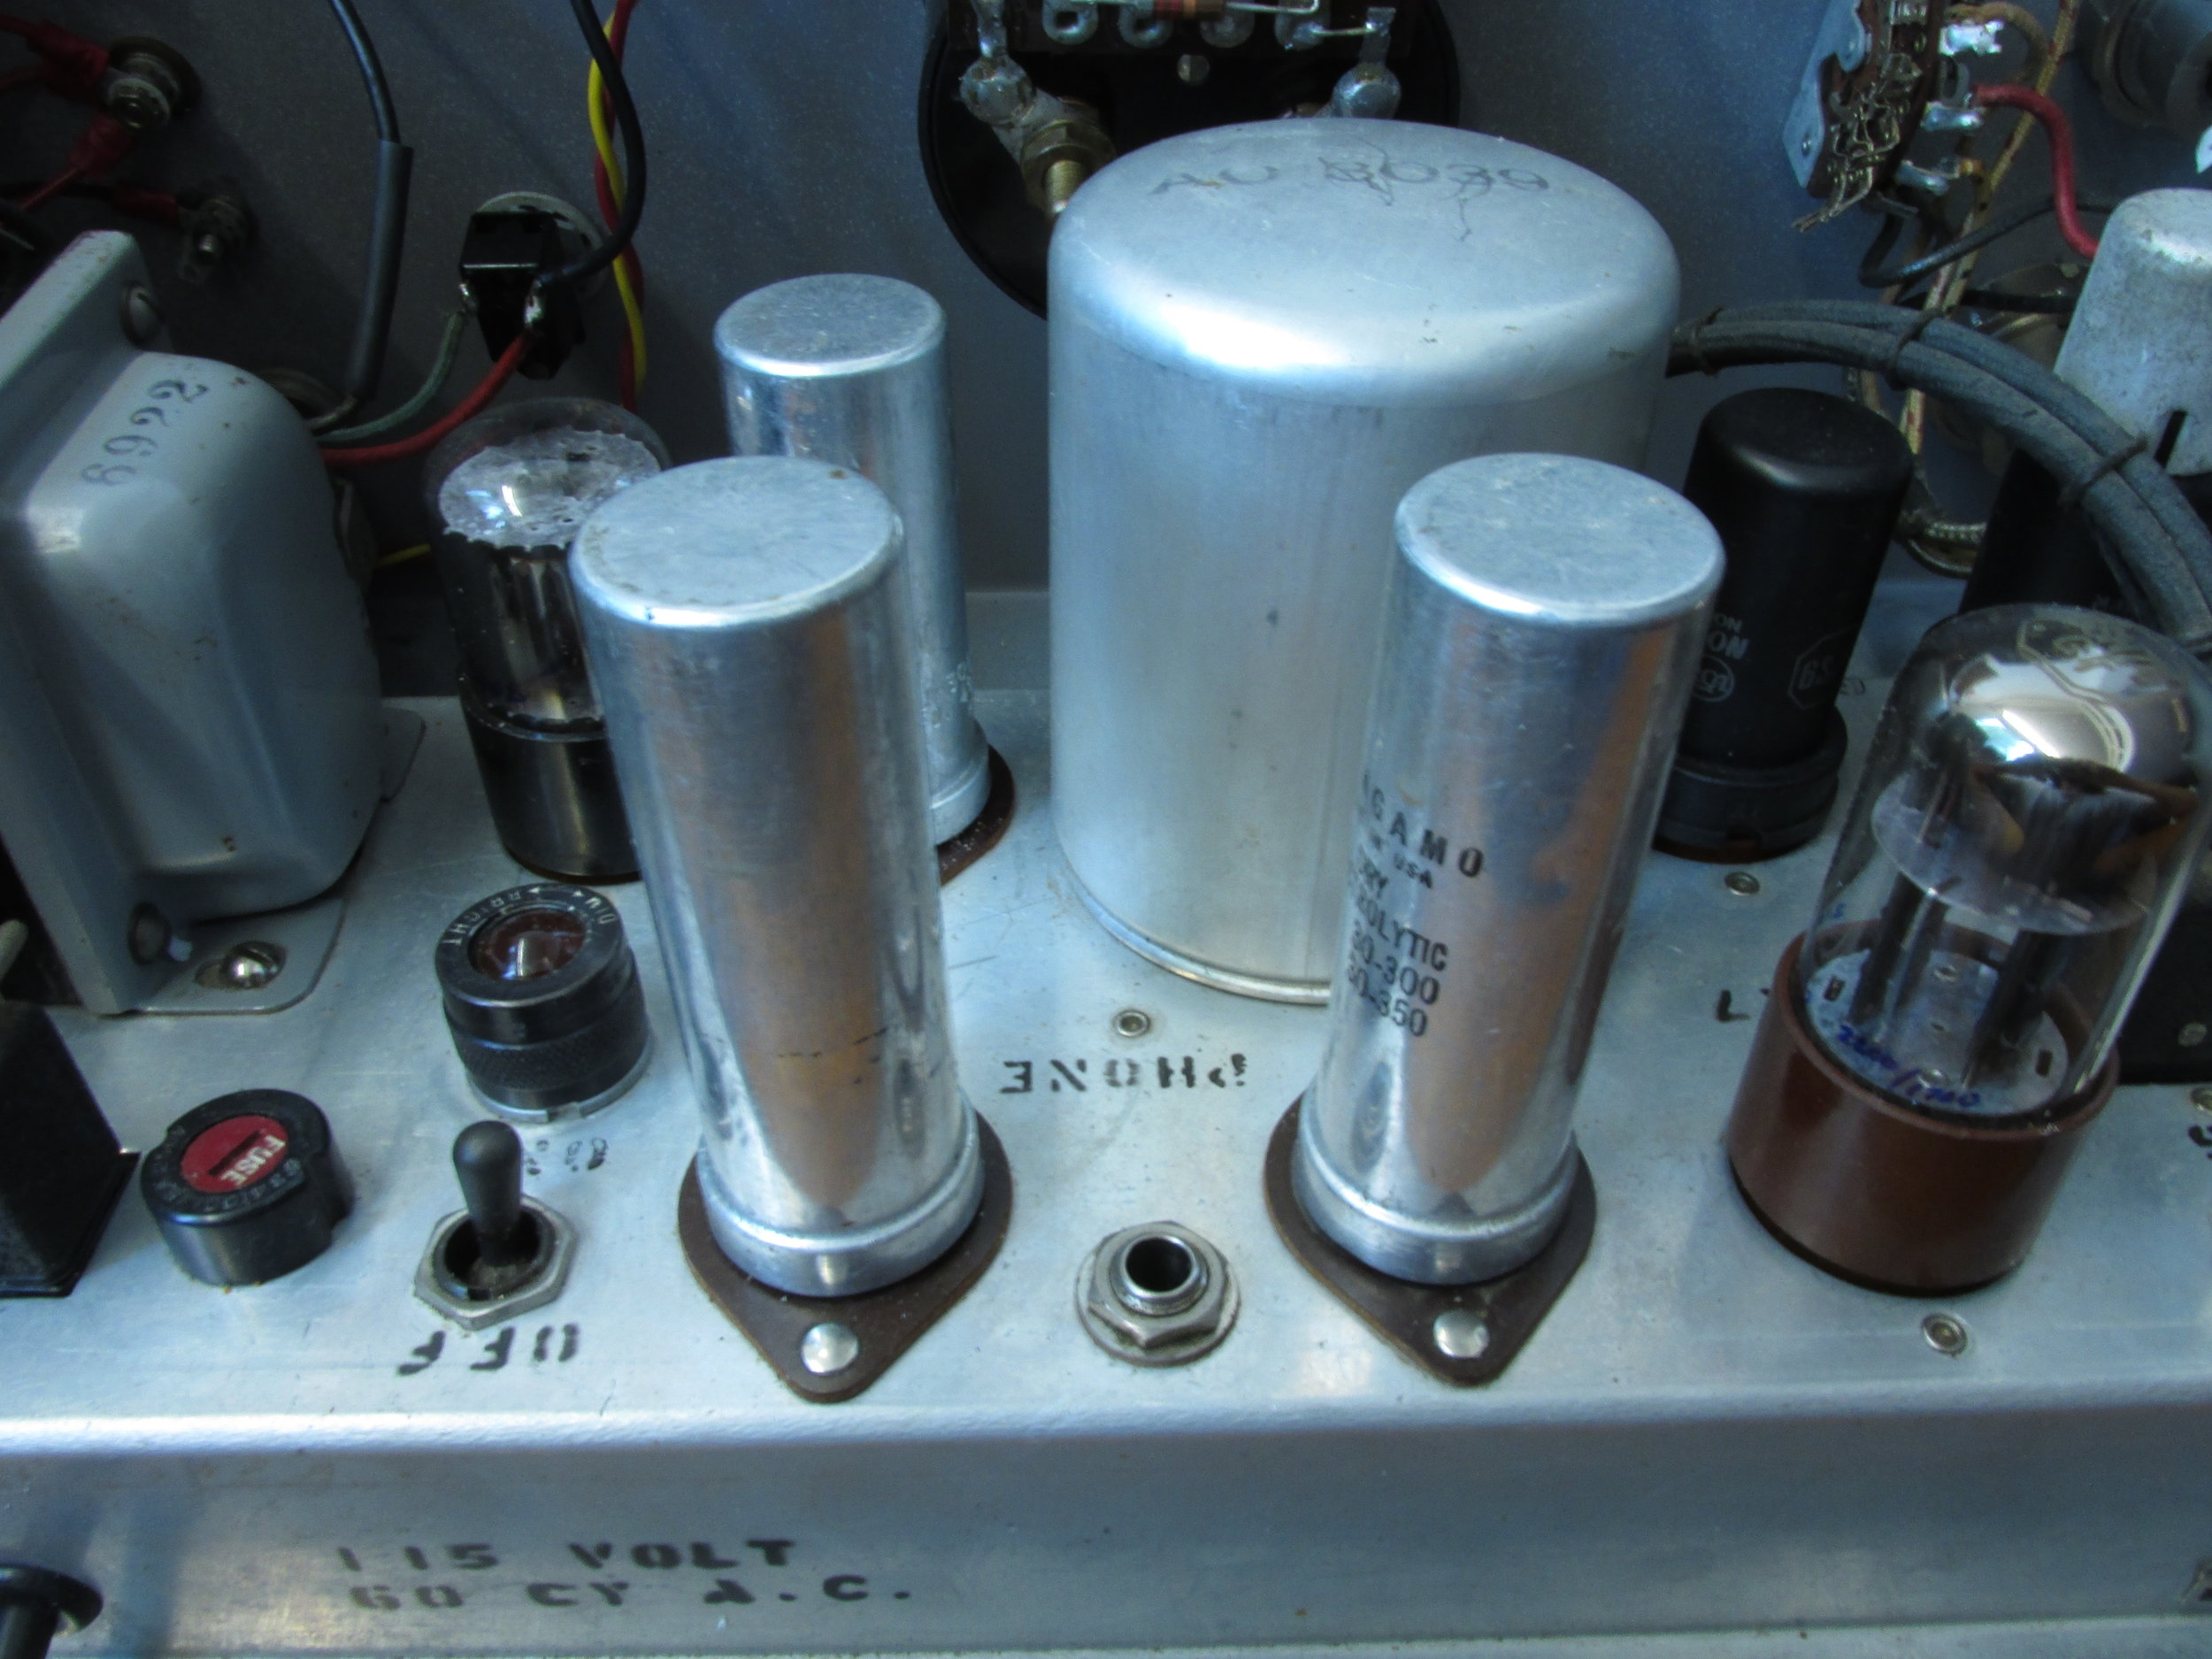 We wanted to lower the overall noise of the preamp, the old capacitors weren't really up to specs anymore.